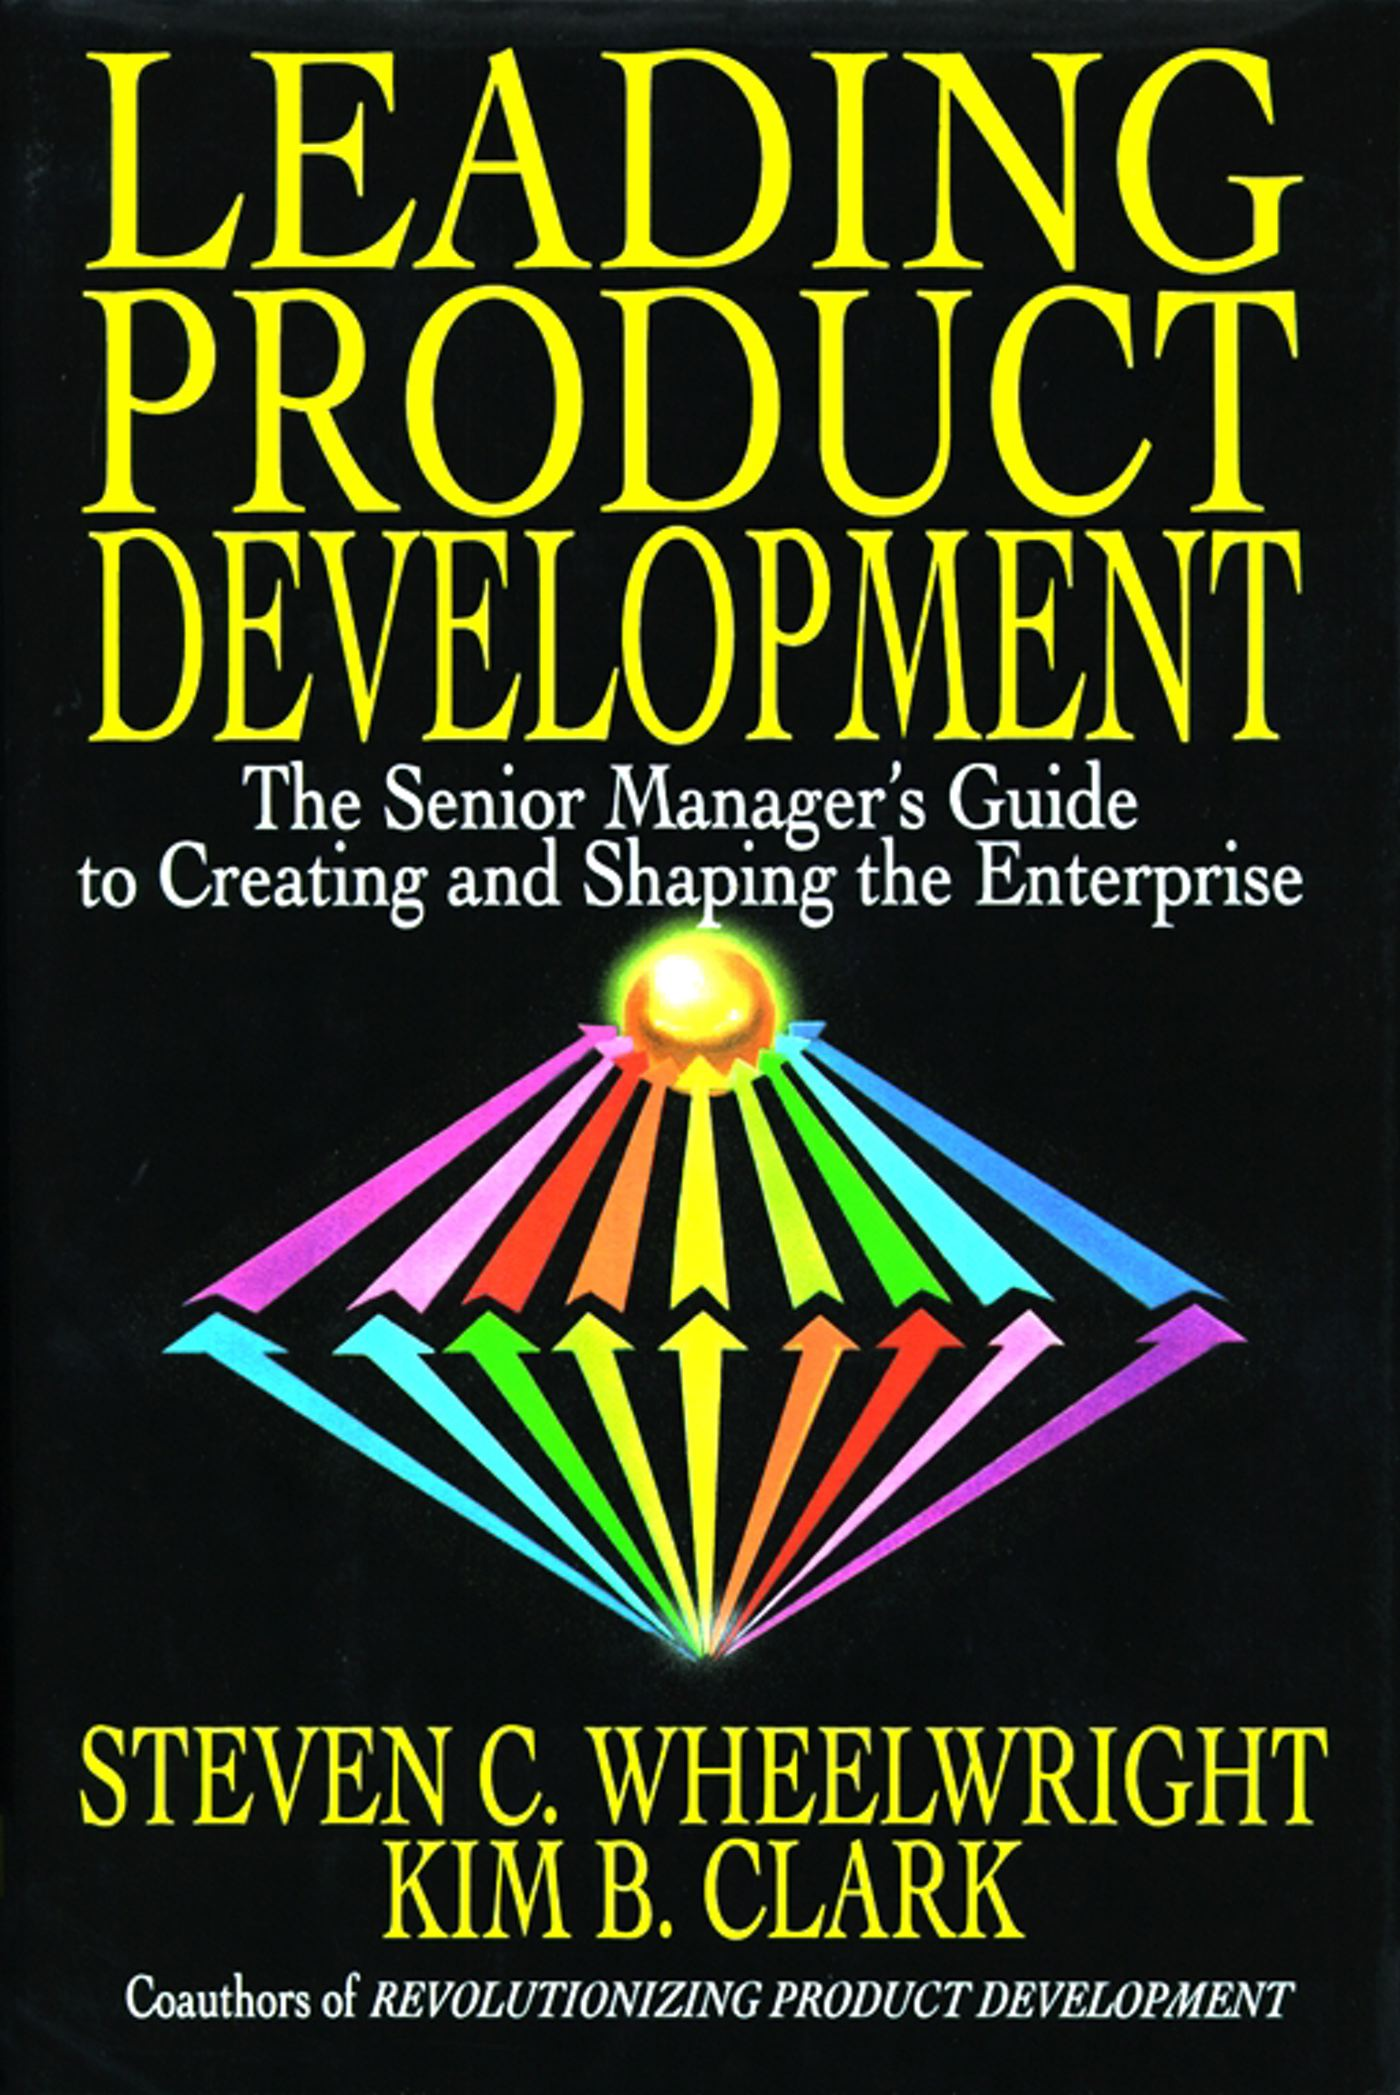 Download Ebook Leading Product Development by Steven C. Wheelwright Pdf